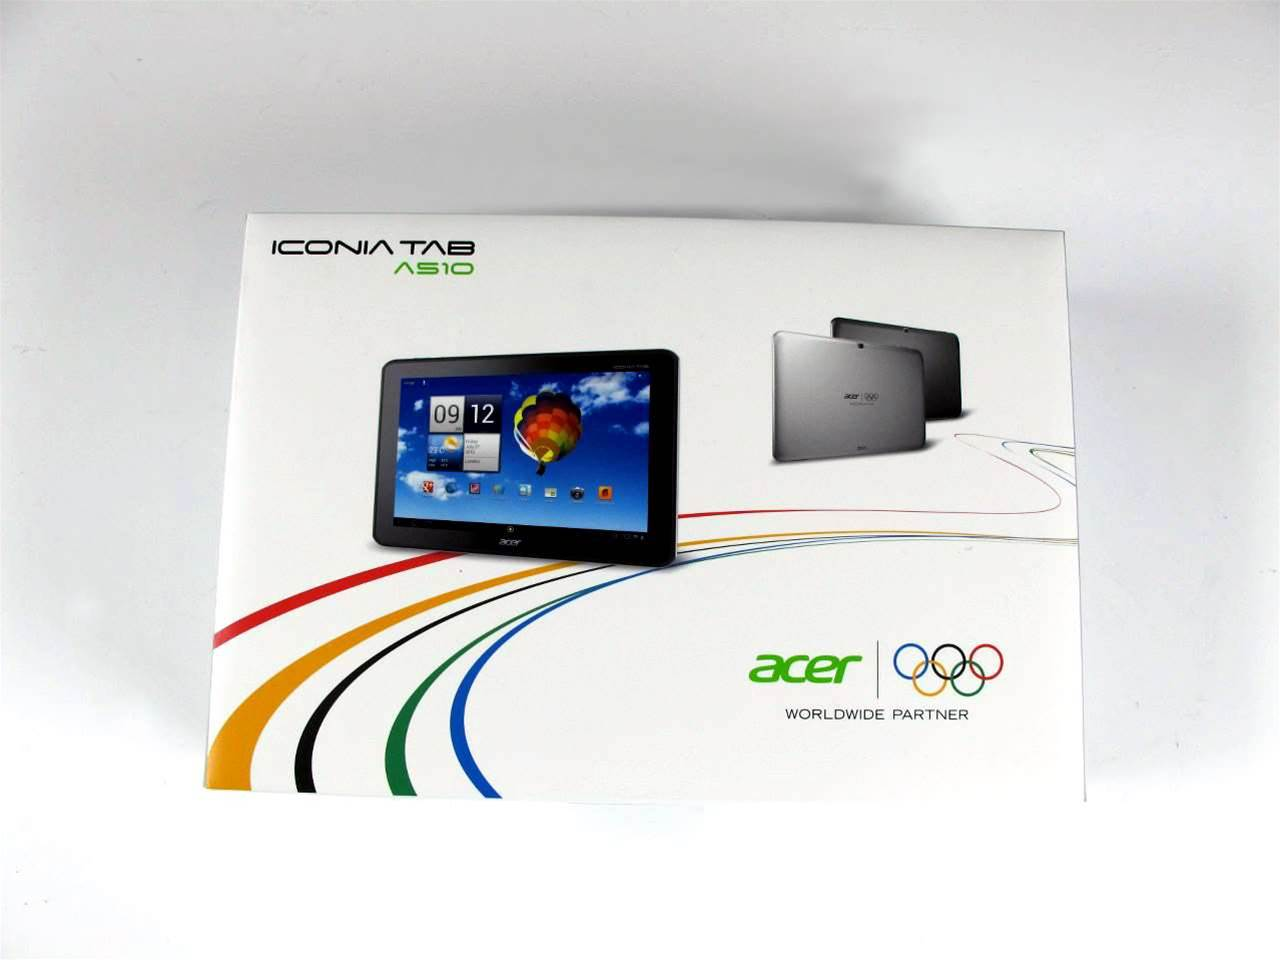 Unboxed: Acer Iconia Tab A510